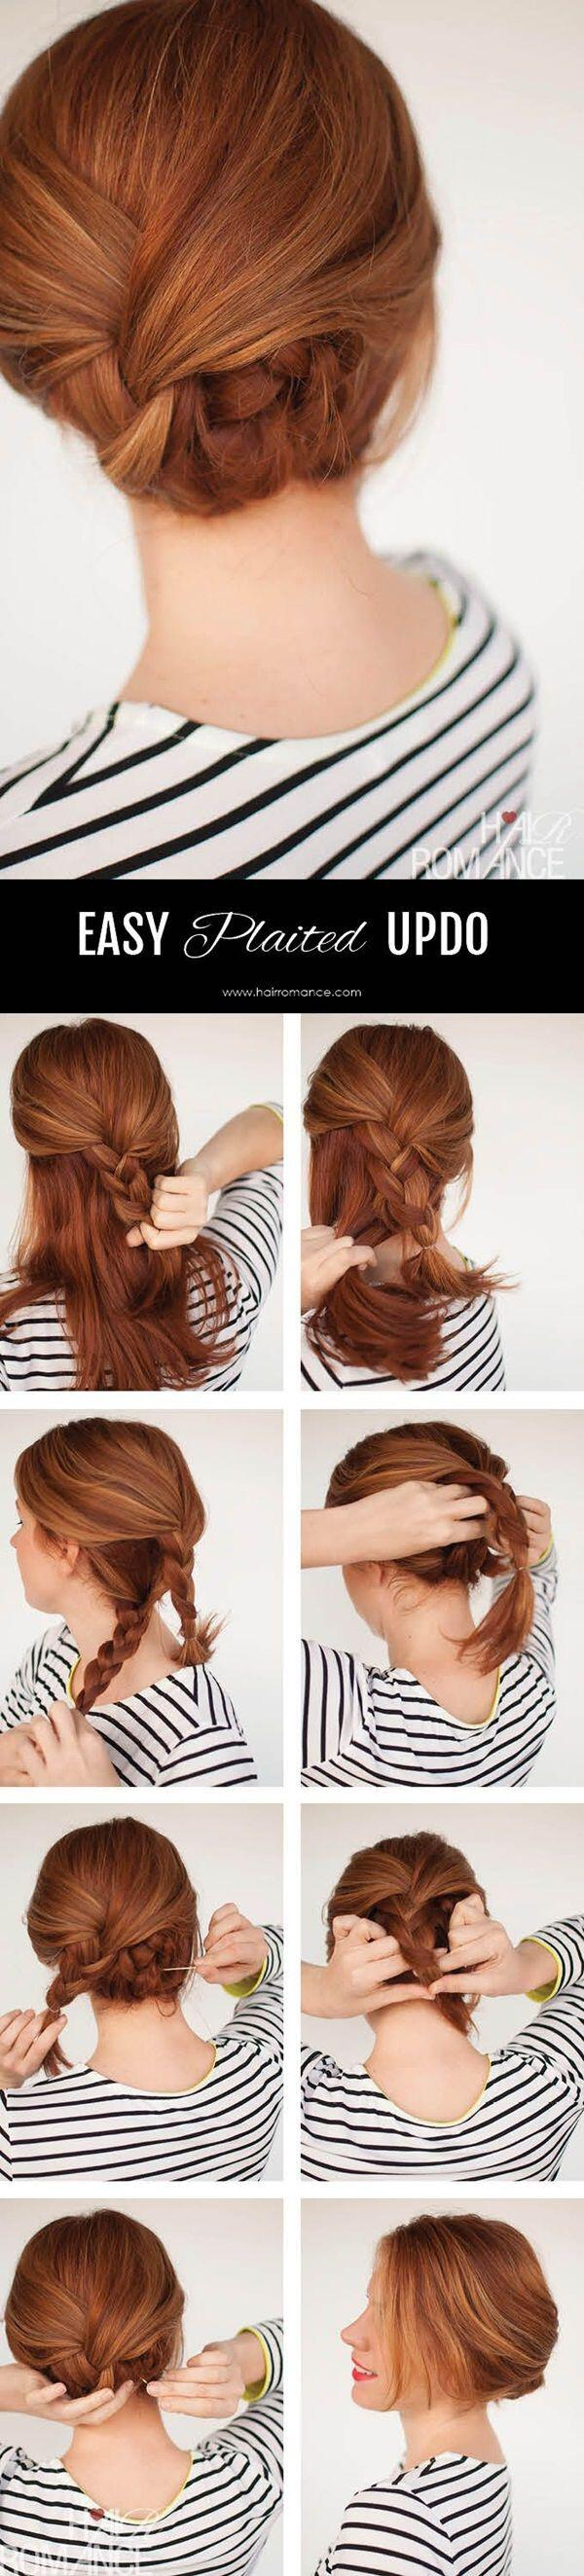 12 simple office hairstyles you have to try 11 - 12 simple office hairstyles you have to try